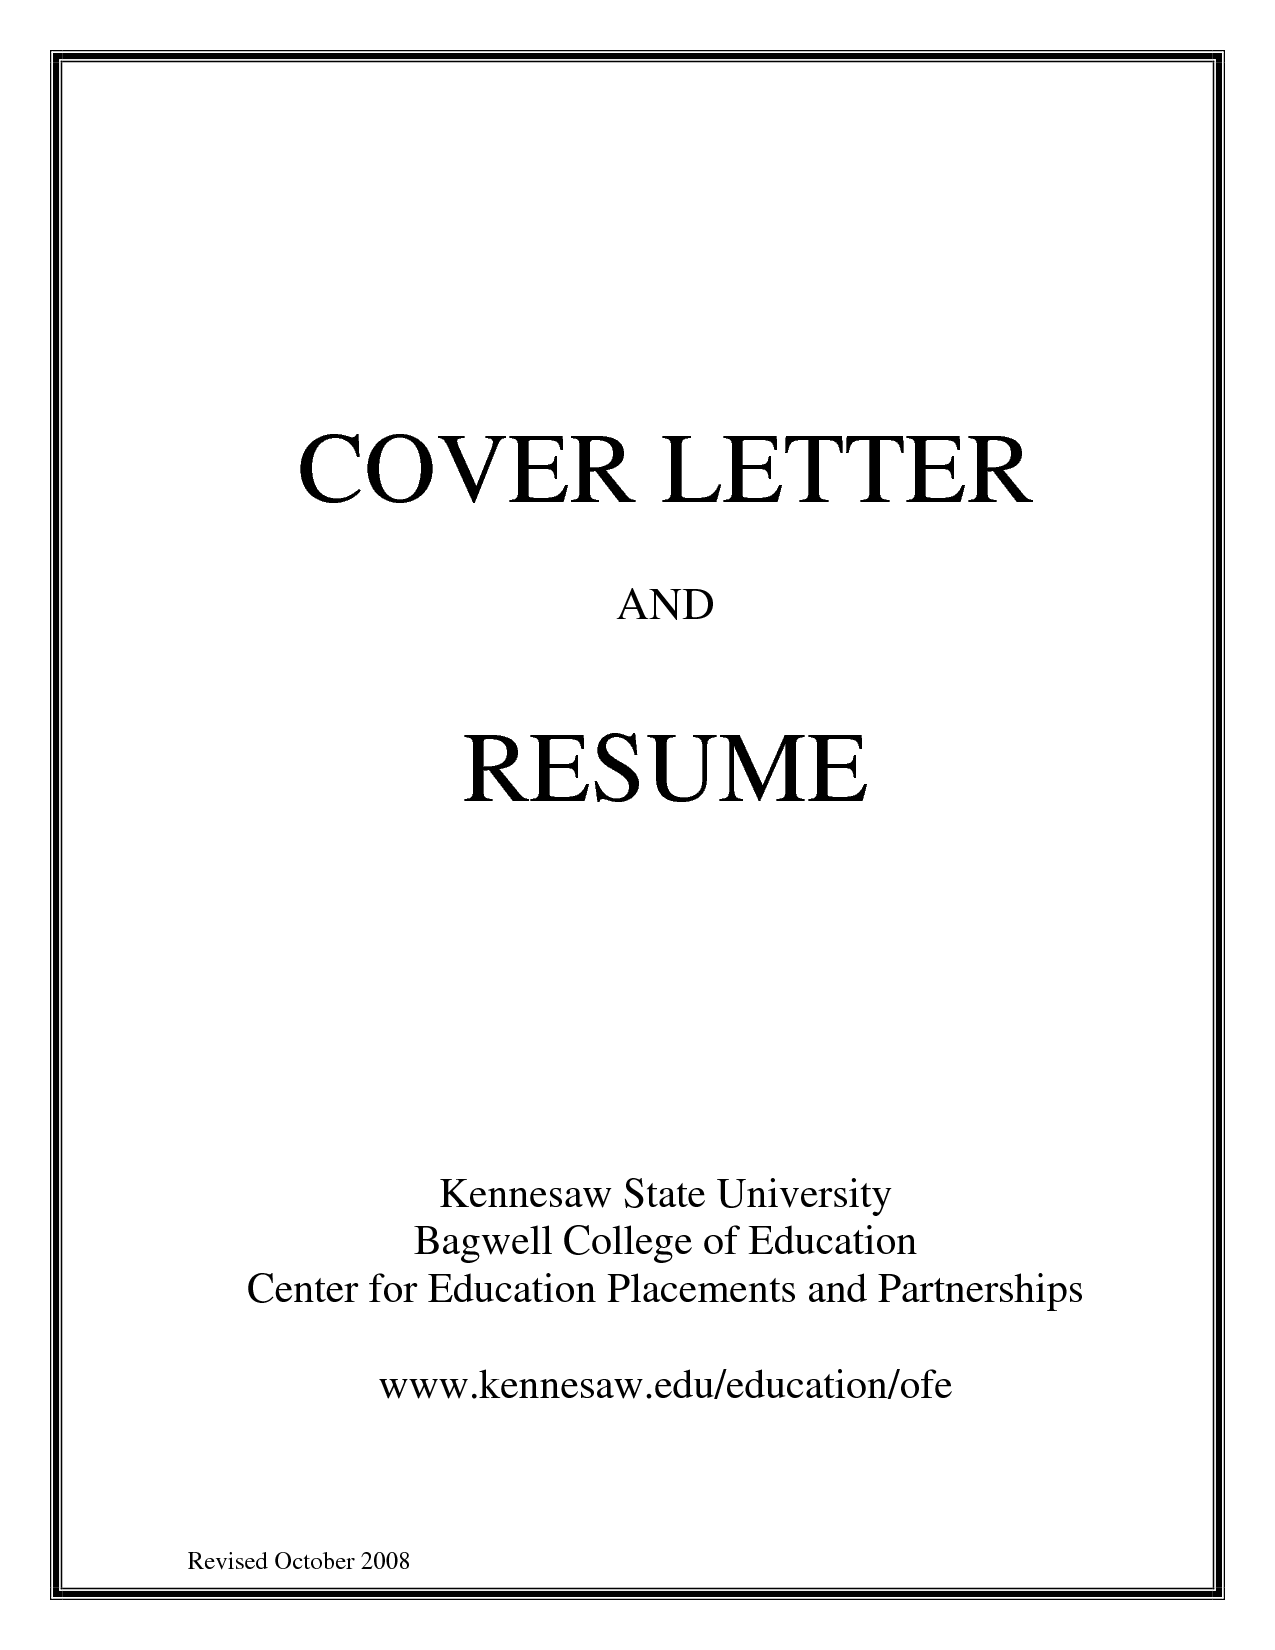 doc word cover letter template free templates for #2: ba882ce f5b074